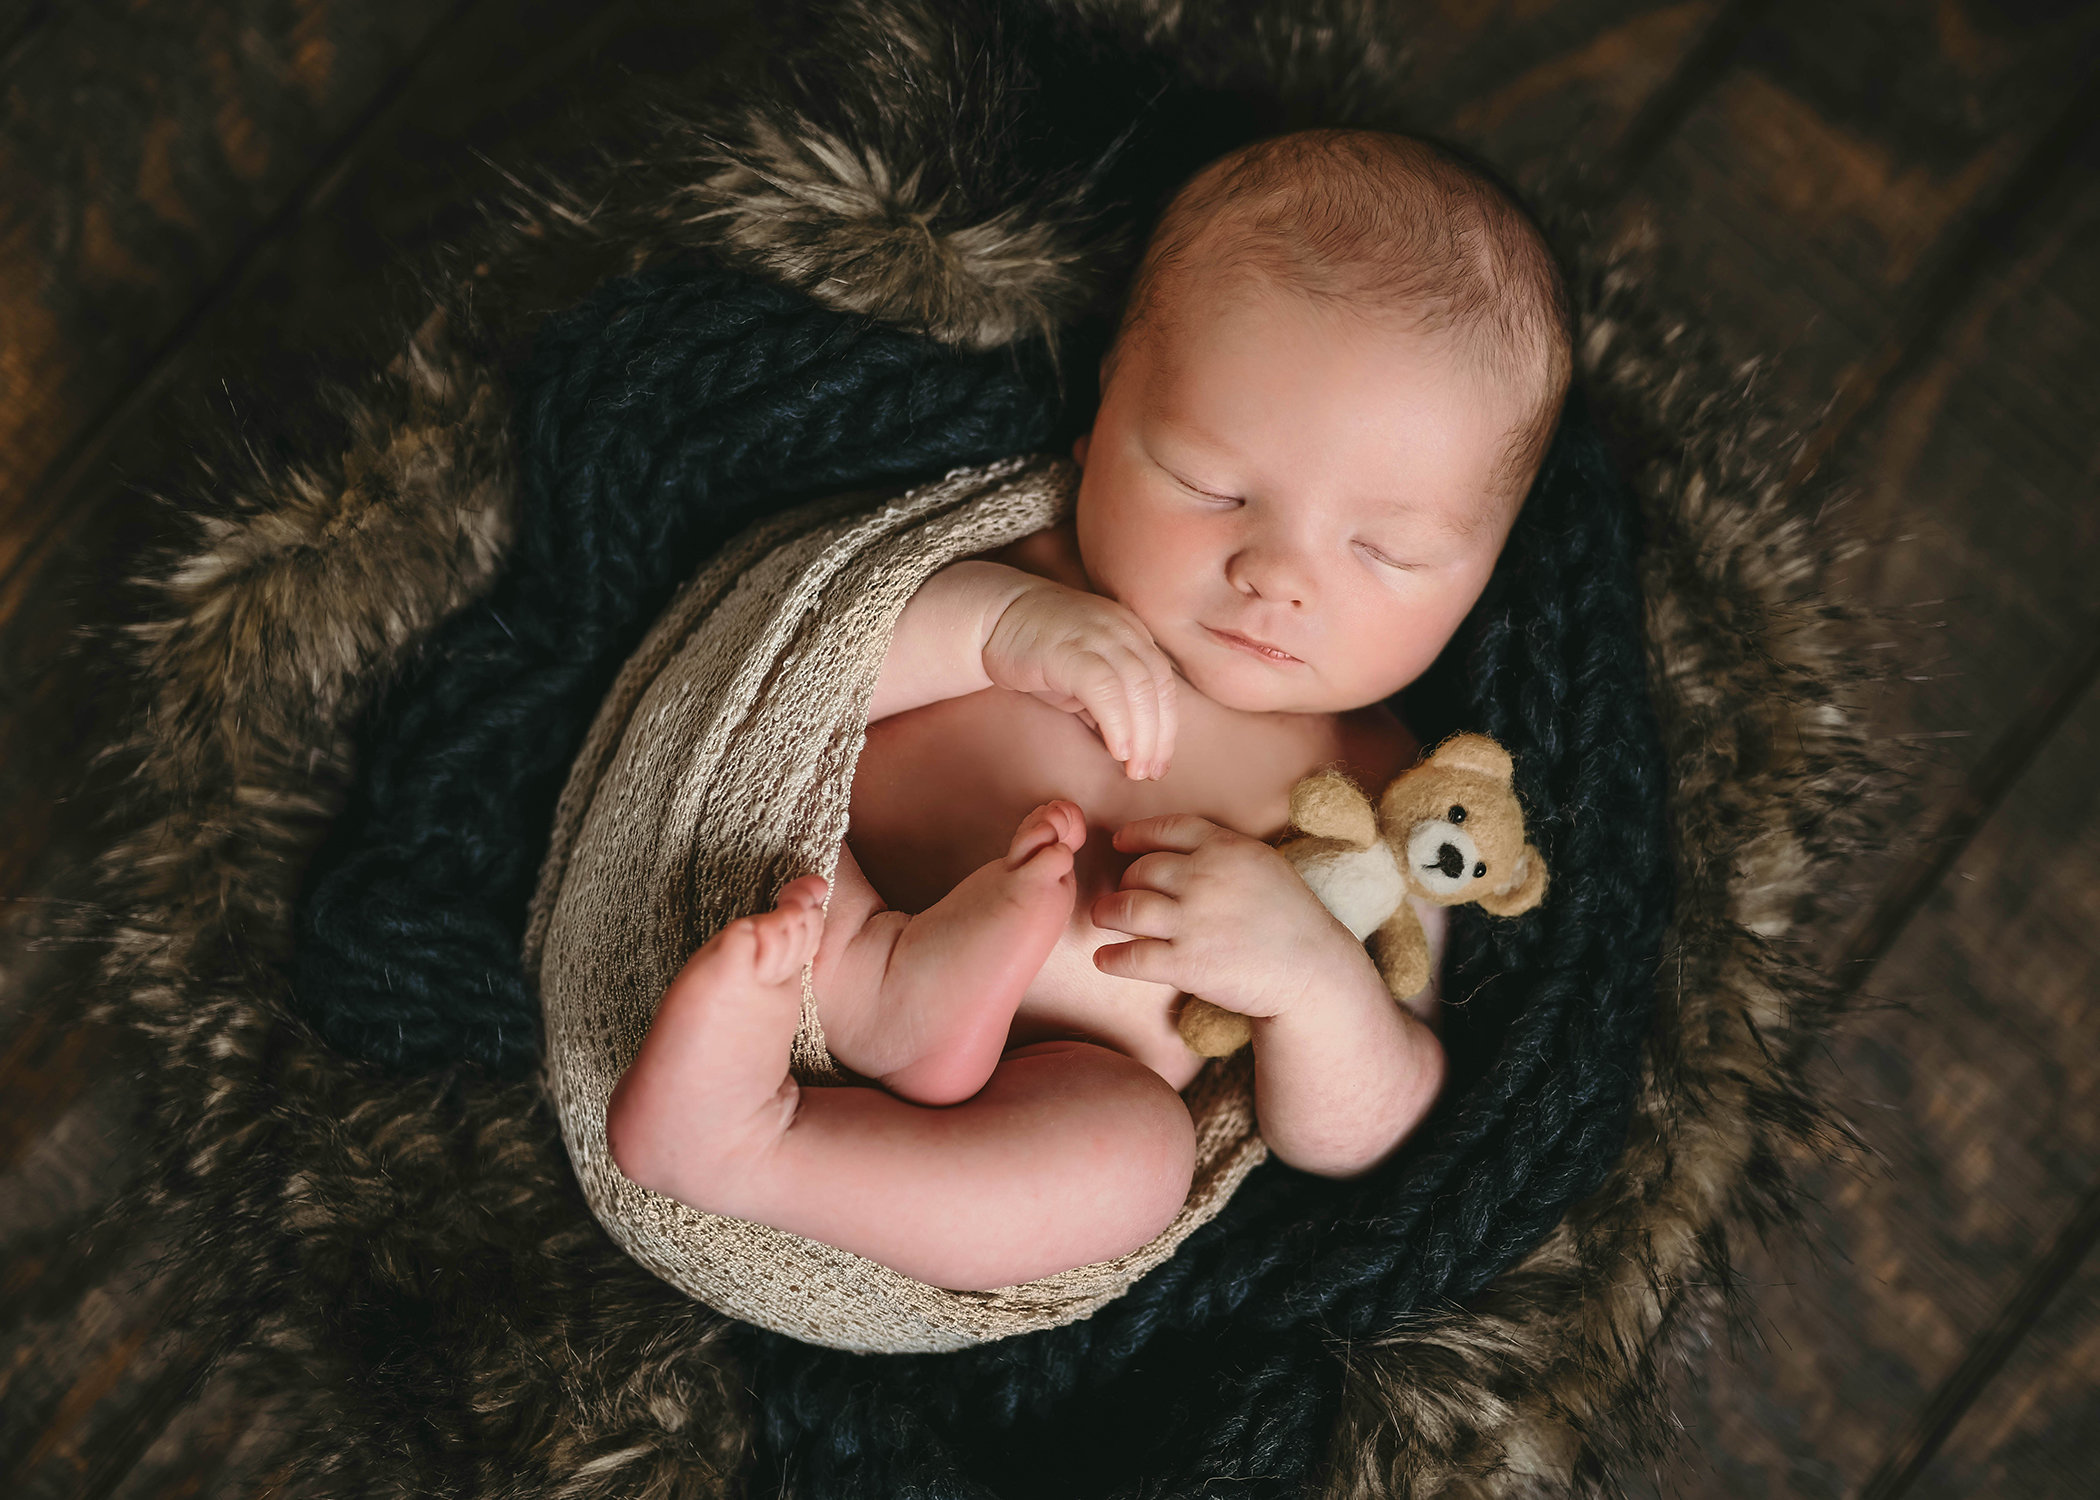 DFW Newborn with Teddy - Copy